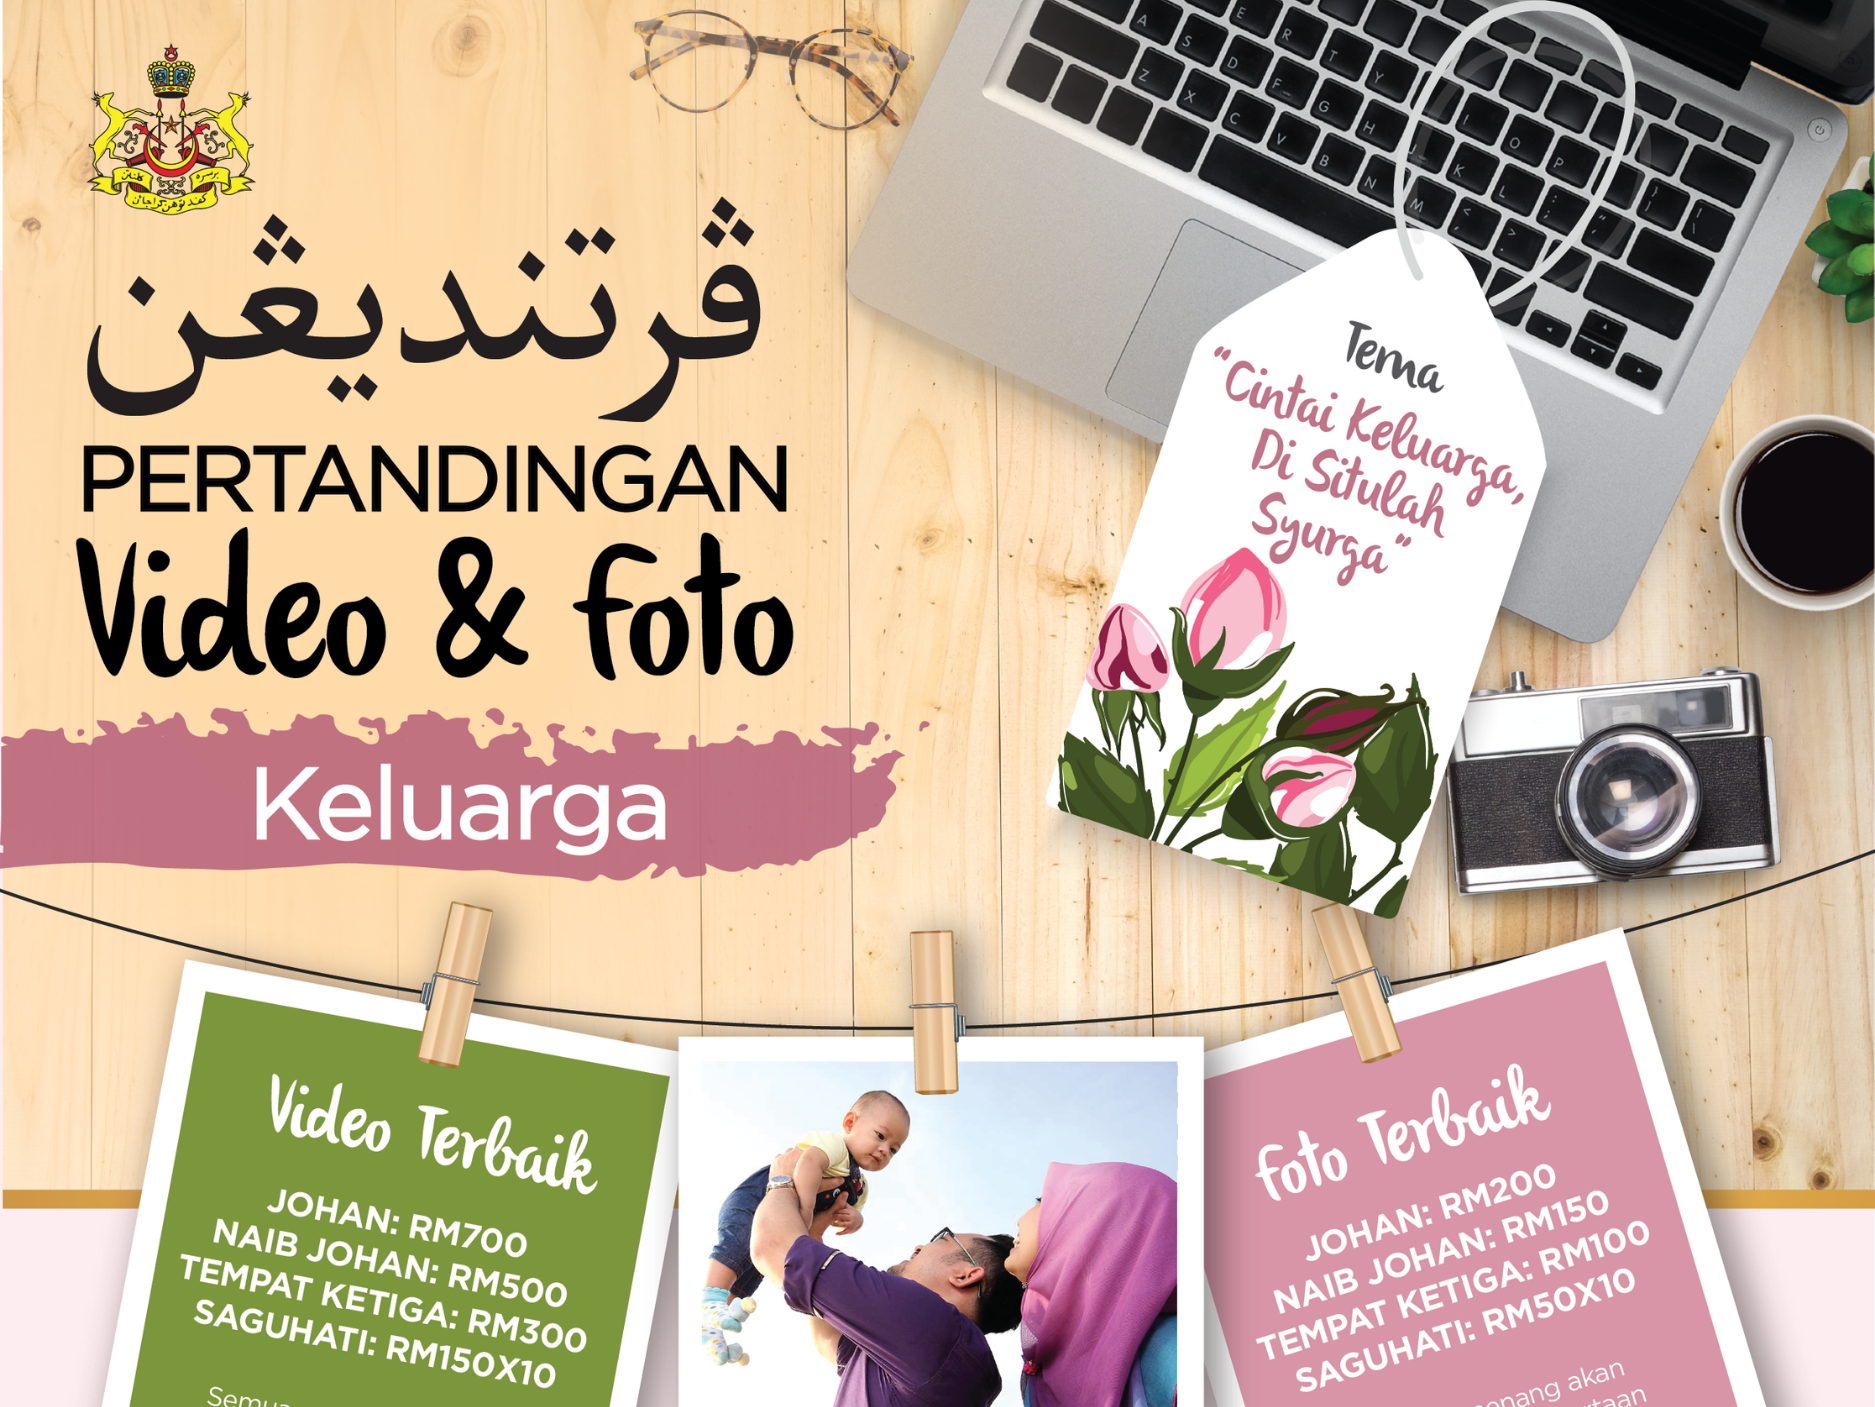 Pertandingan Video Pendek & Foto Kreatif